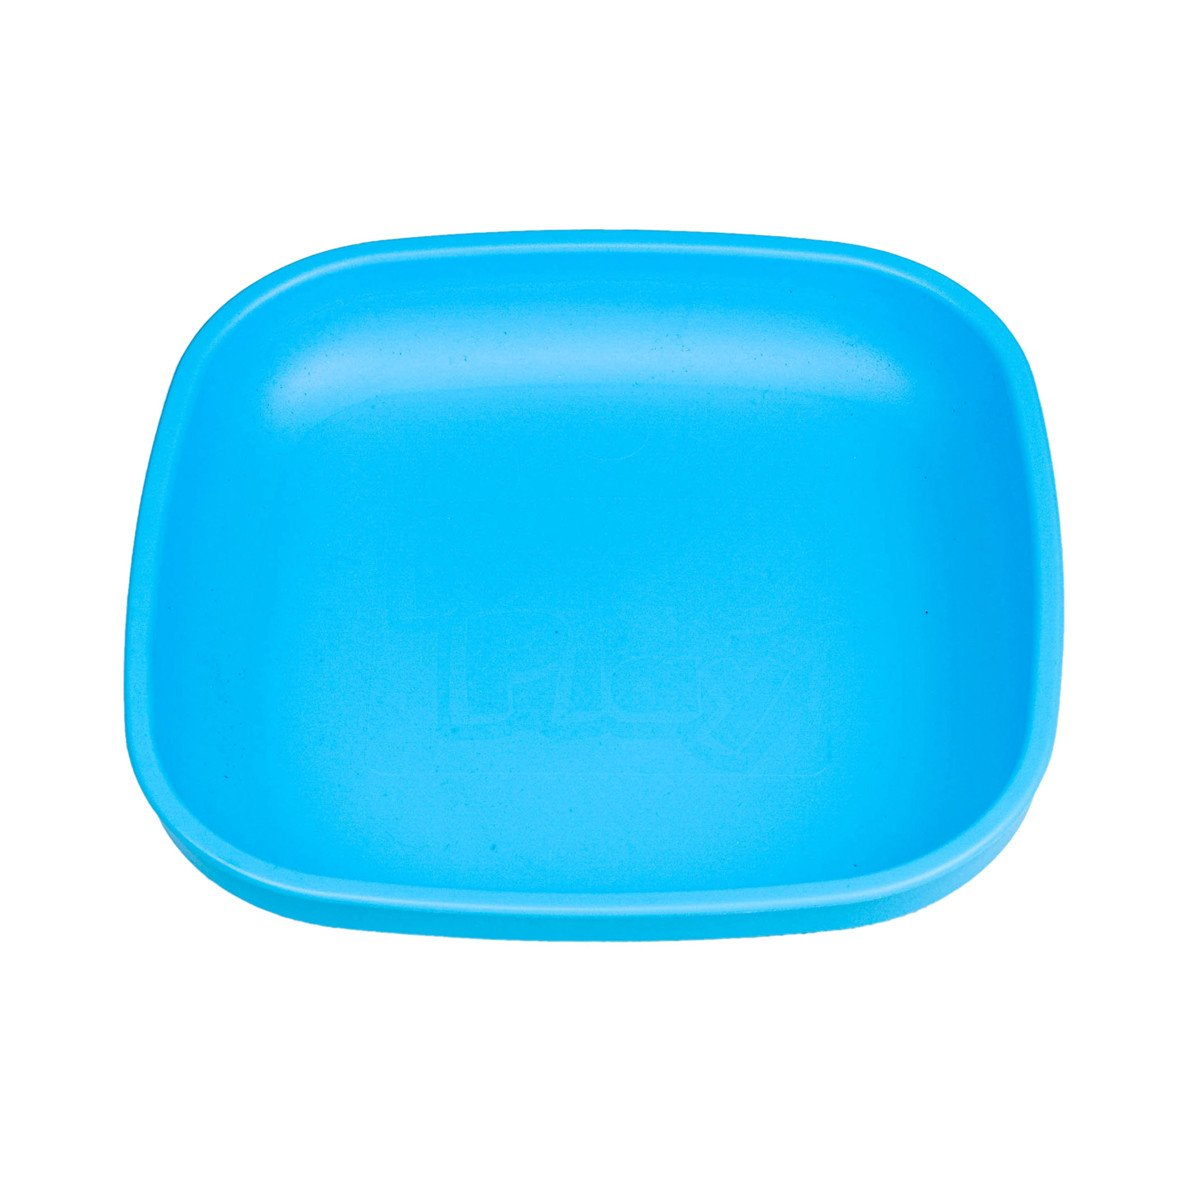 Replay Plate Replay Dinnerware Sky Blue at Little Earth Nest Eco Shop